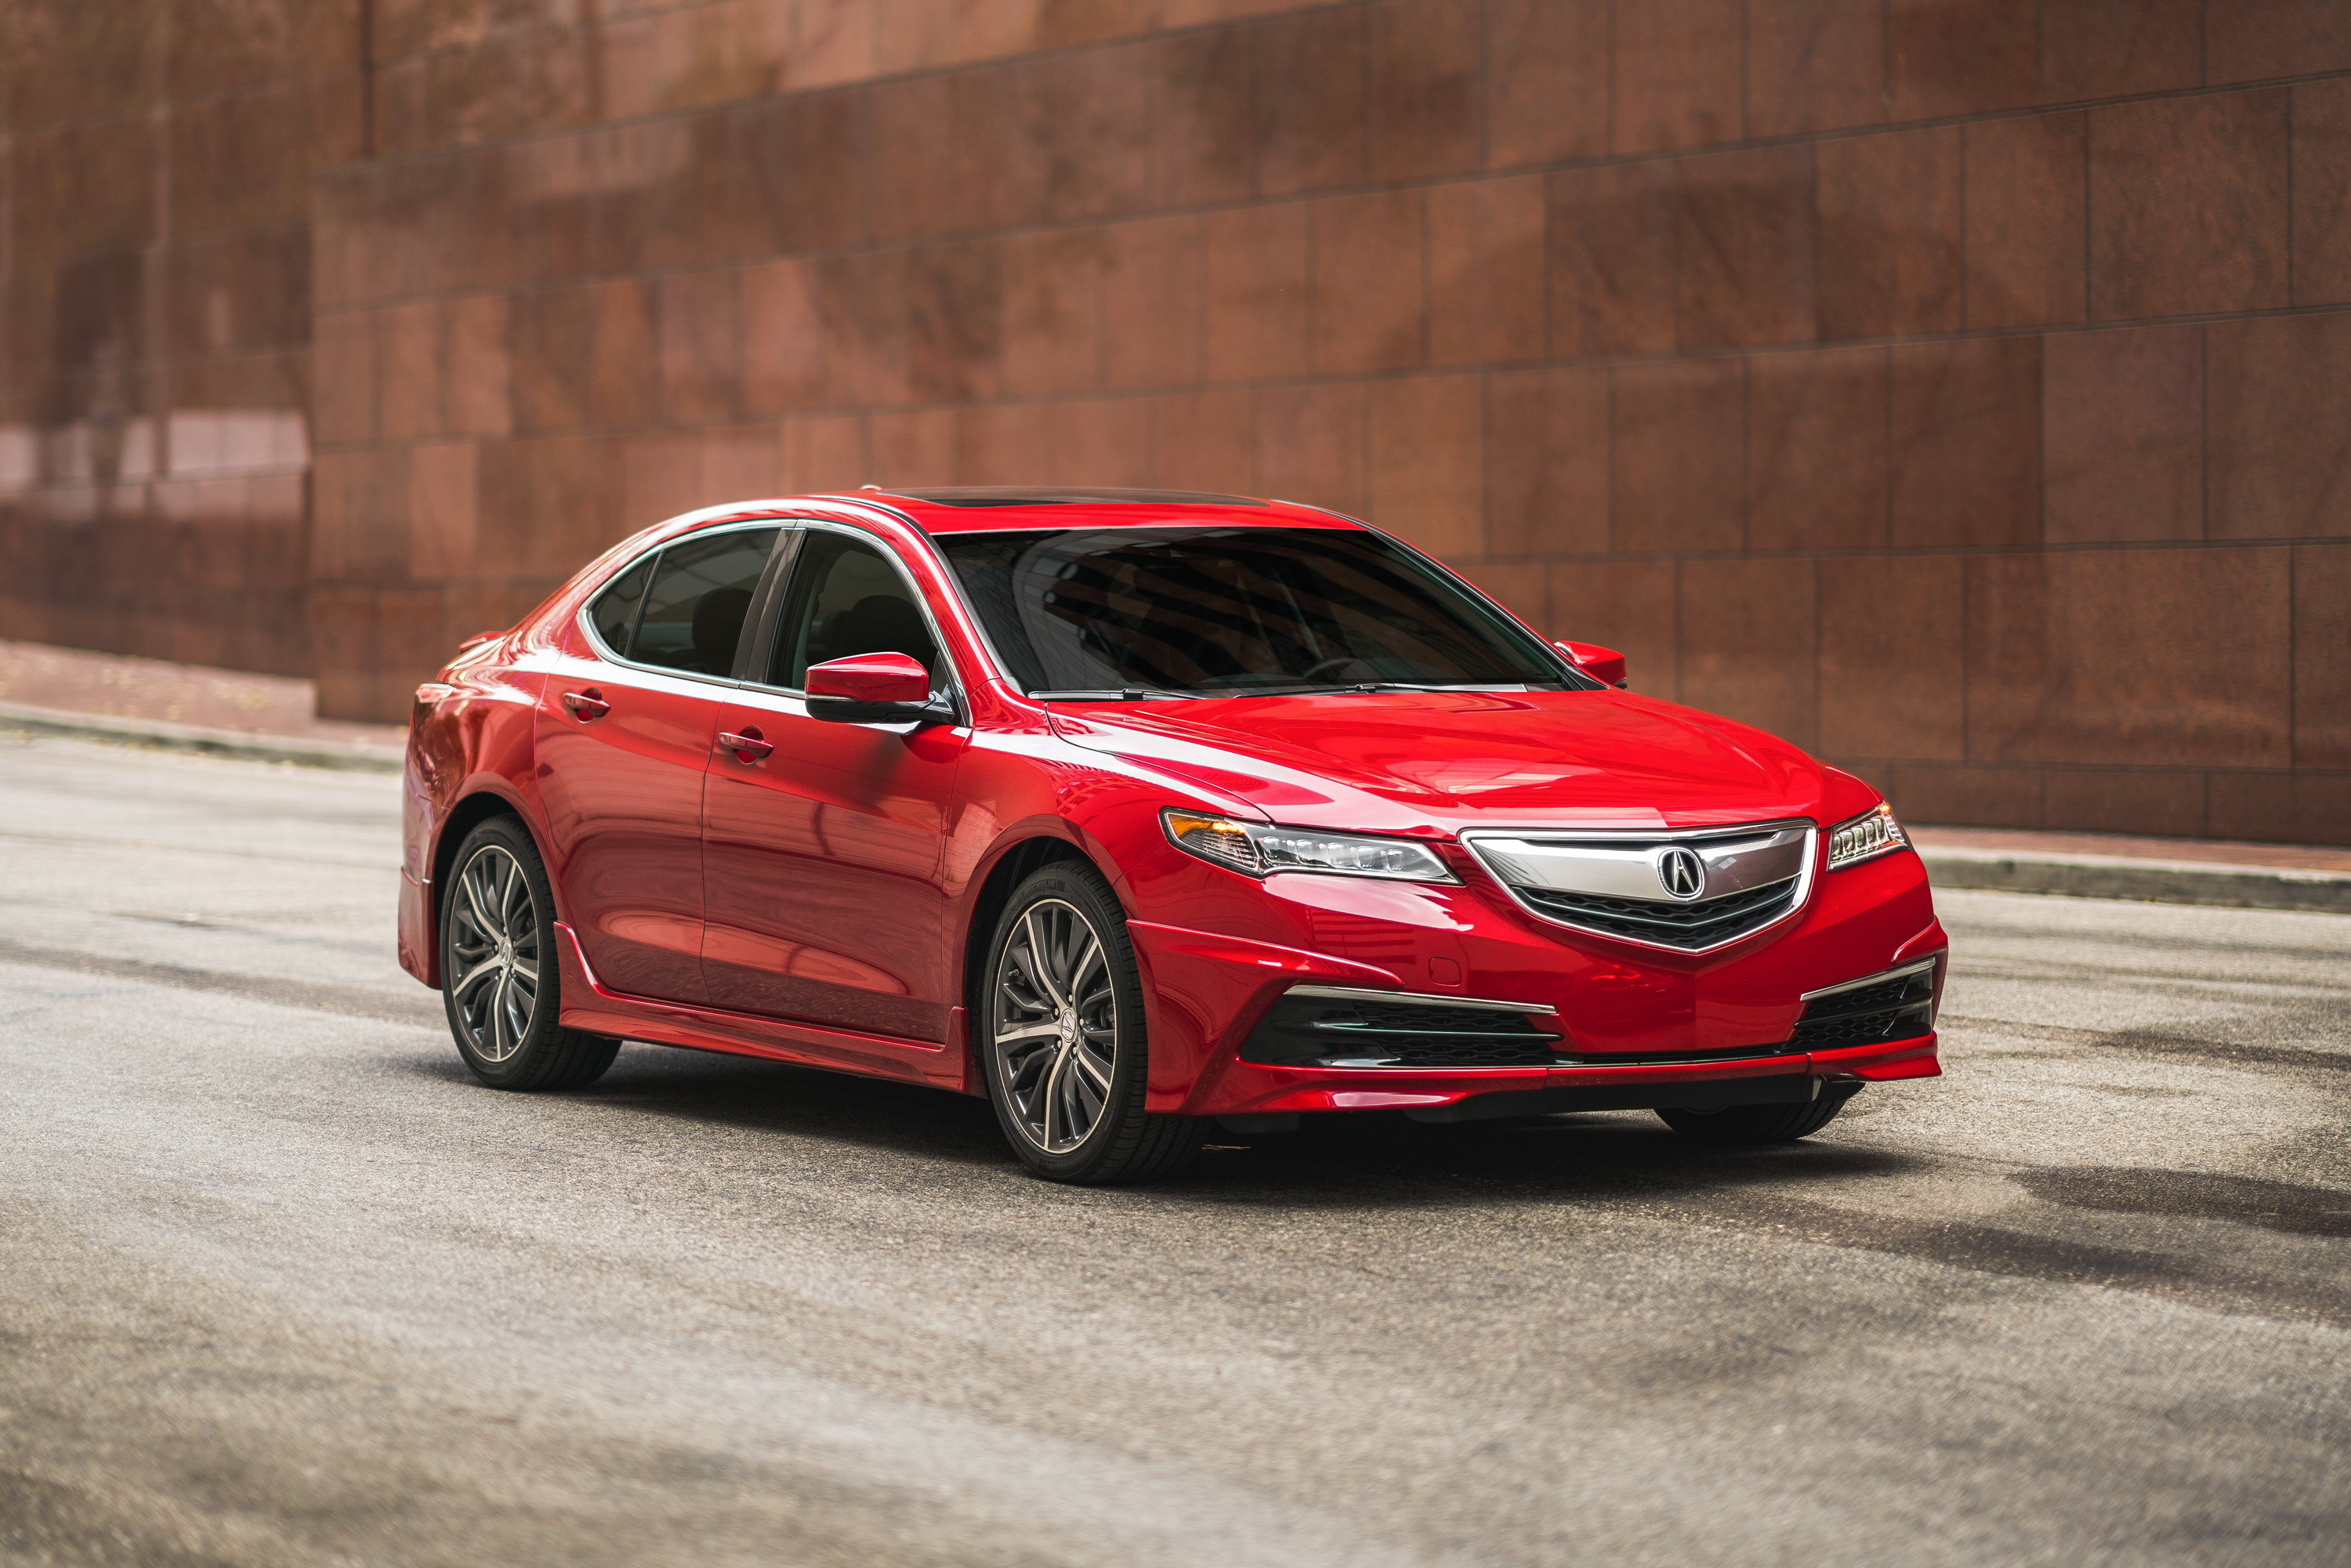 occurred acura rlx cleantechnica models tlx vs tesla an error model ilx